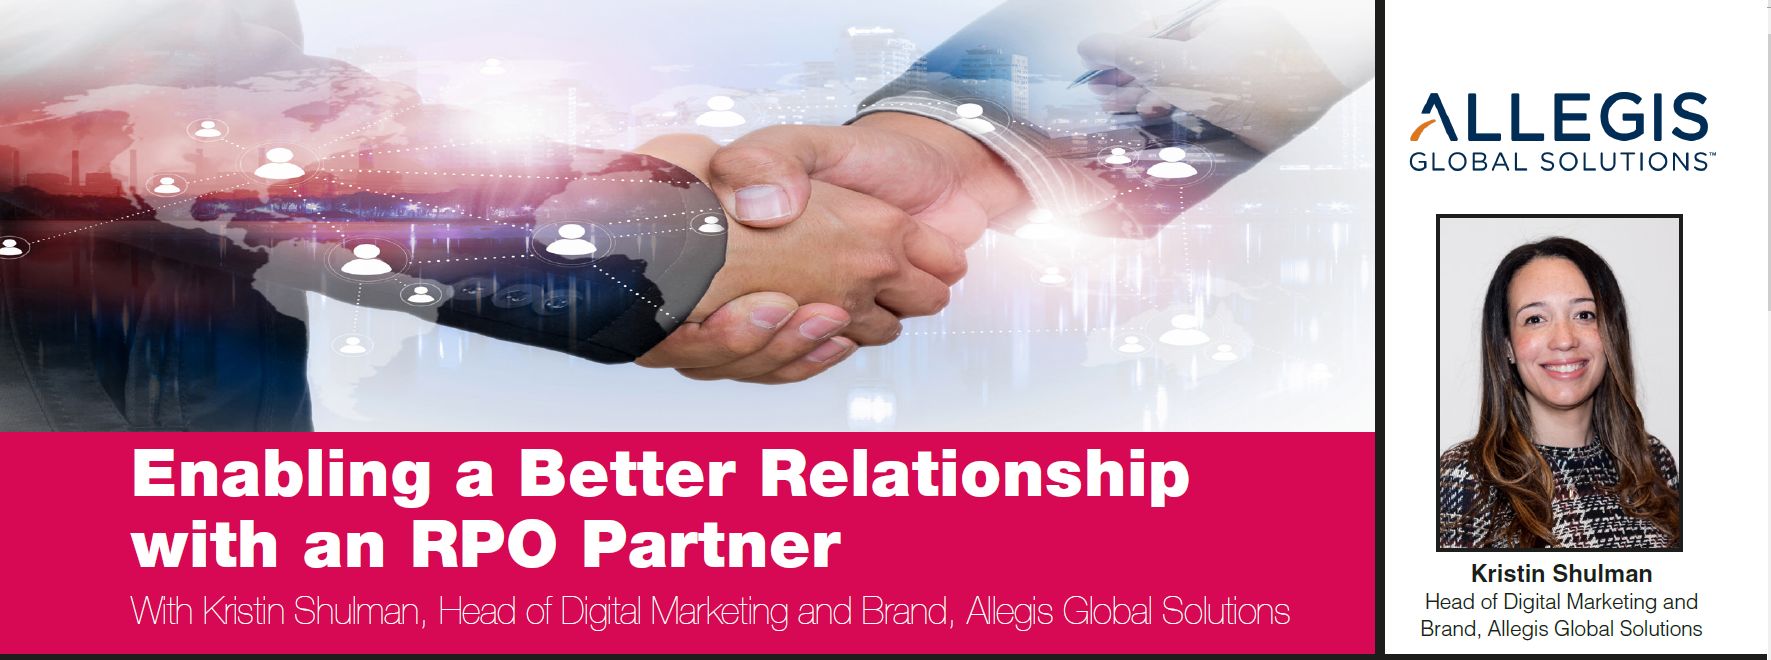 Enabling_a_Better_Relationship_with_an_RPO_Partner